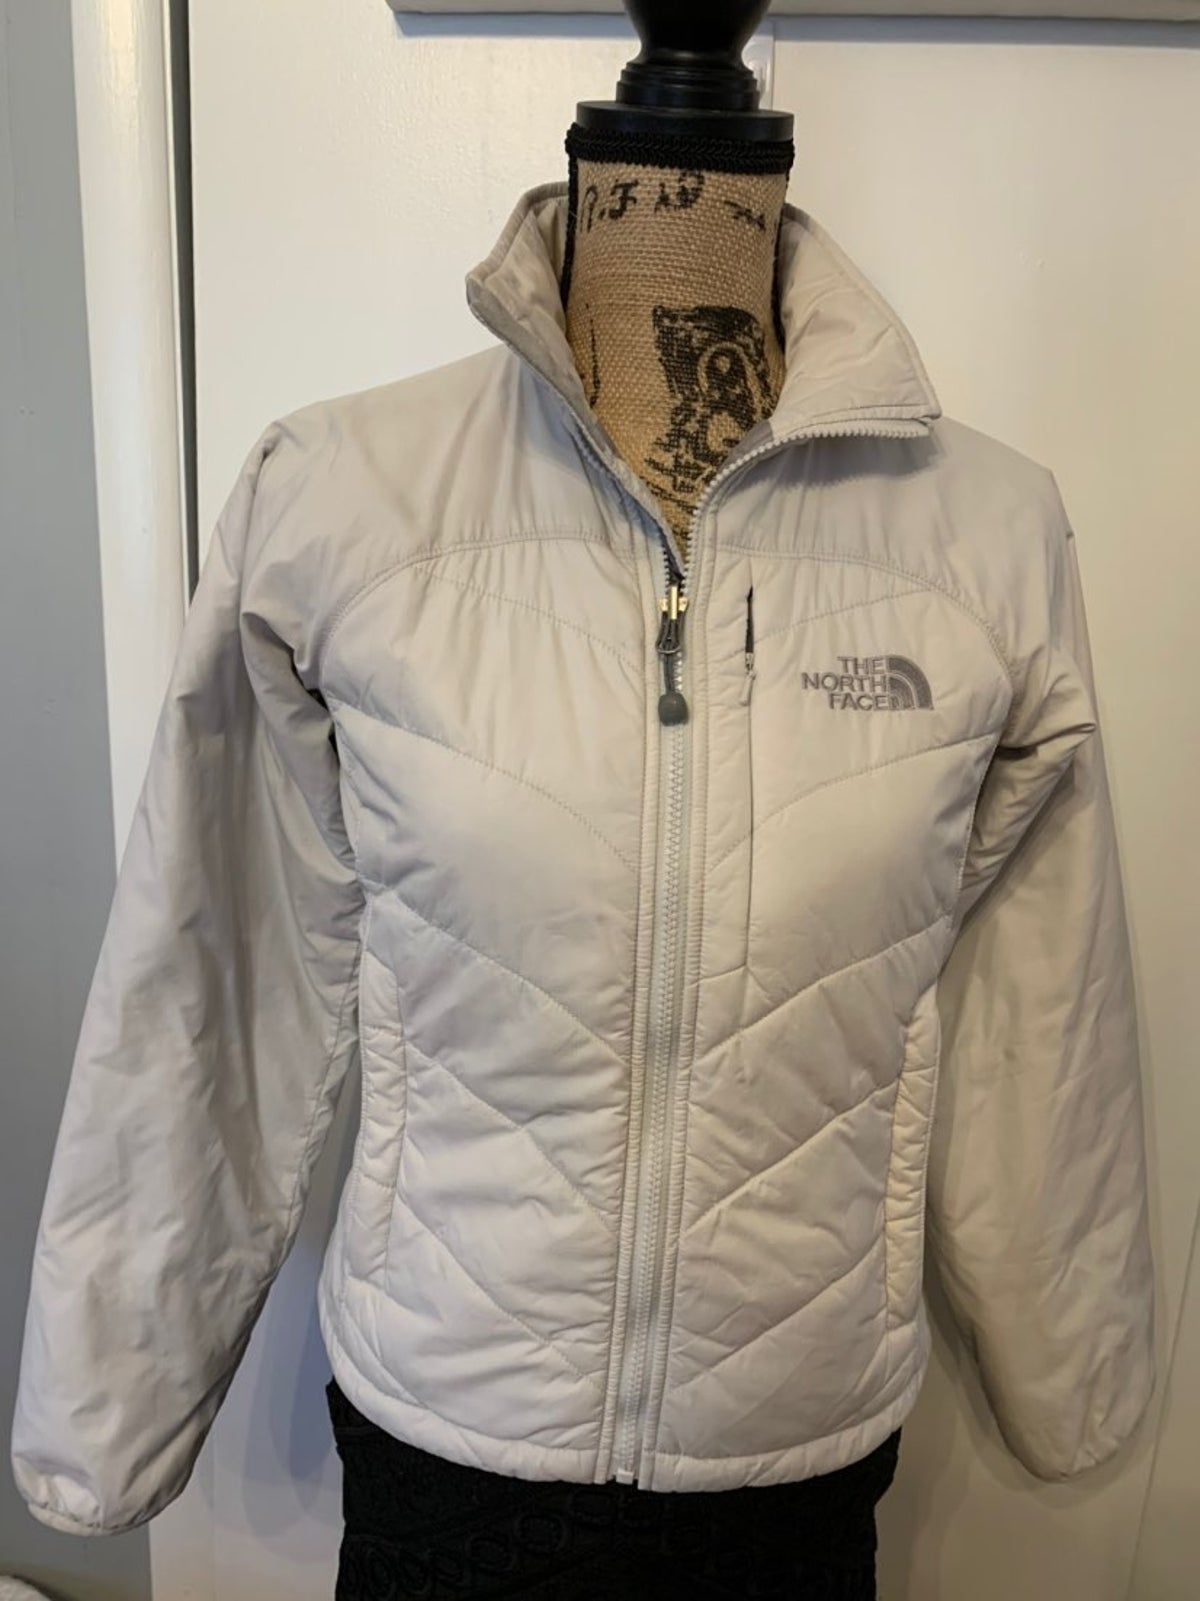 Womens Northface Jacket Xs North Face Jacket Jackets The North Face [ 1601 x 1200 Pixel ]